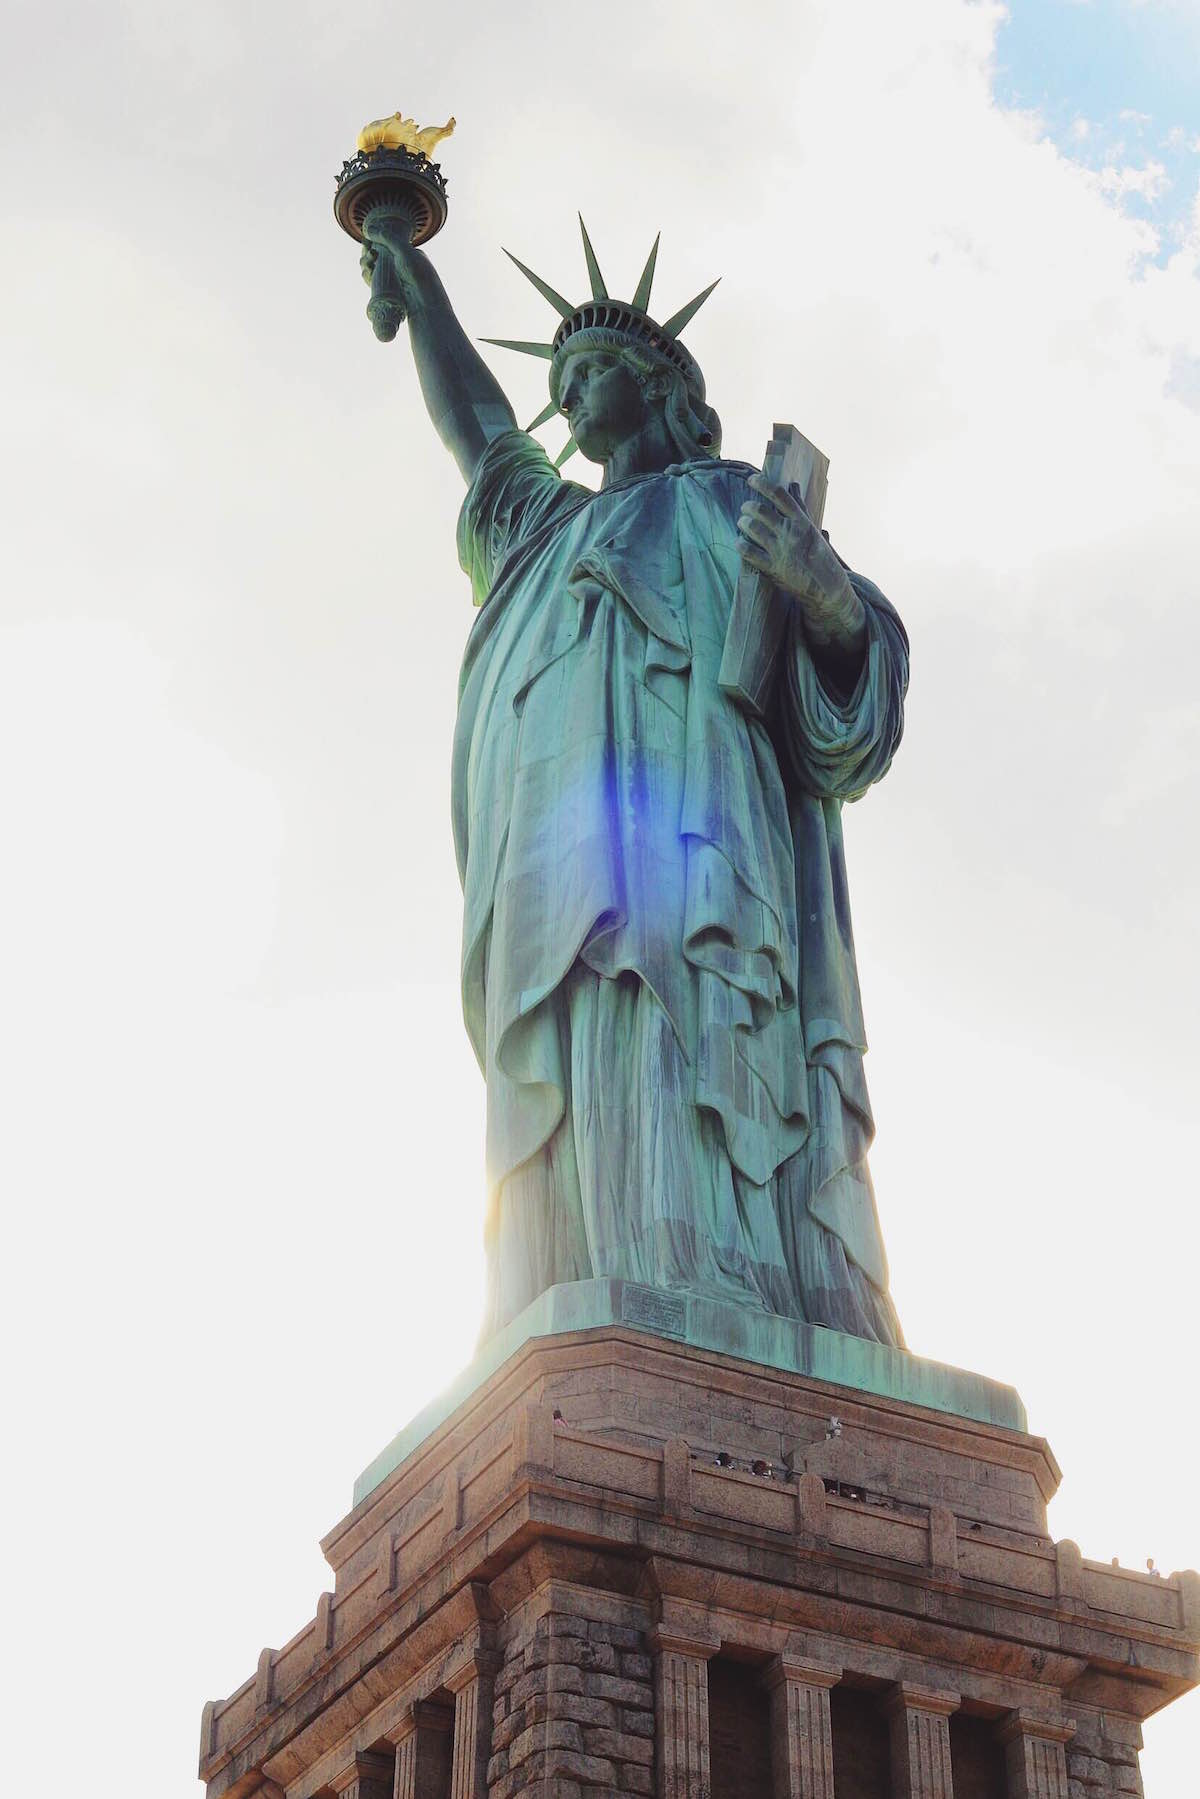 A photo of the Statue of Liberty – NYC 2014